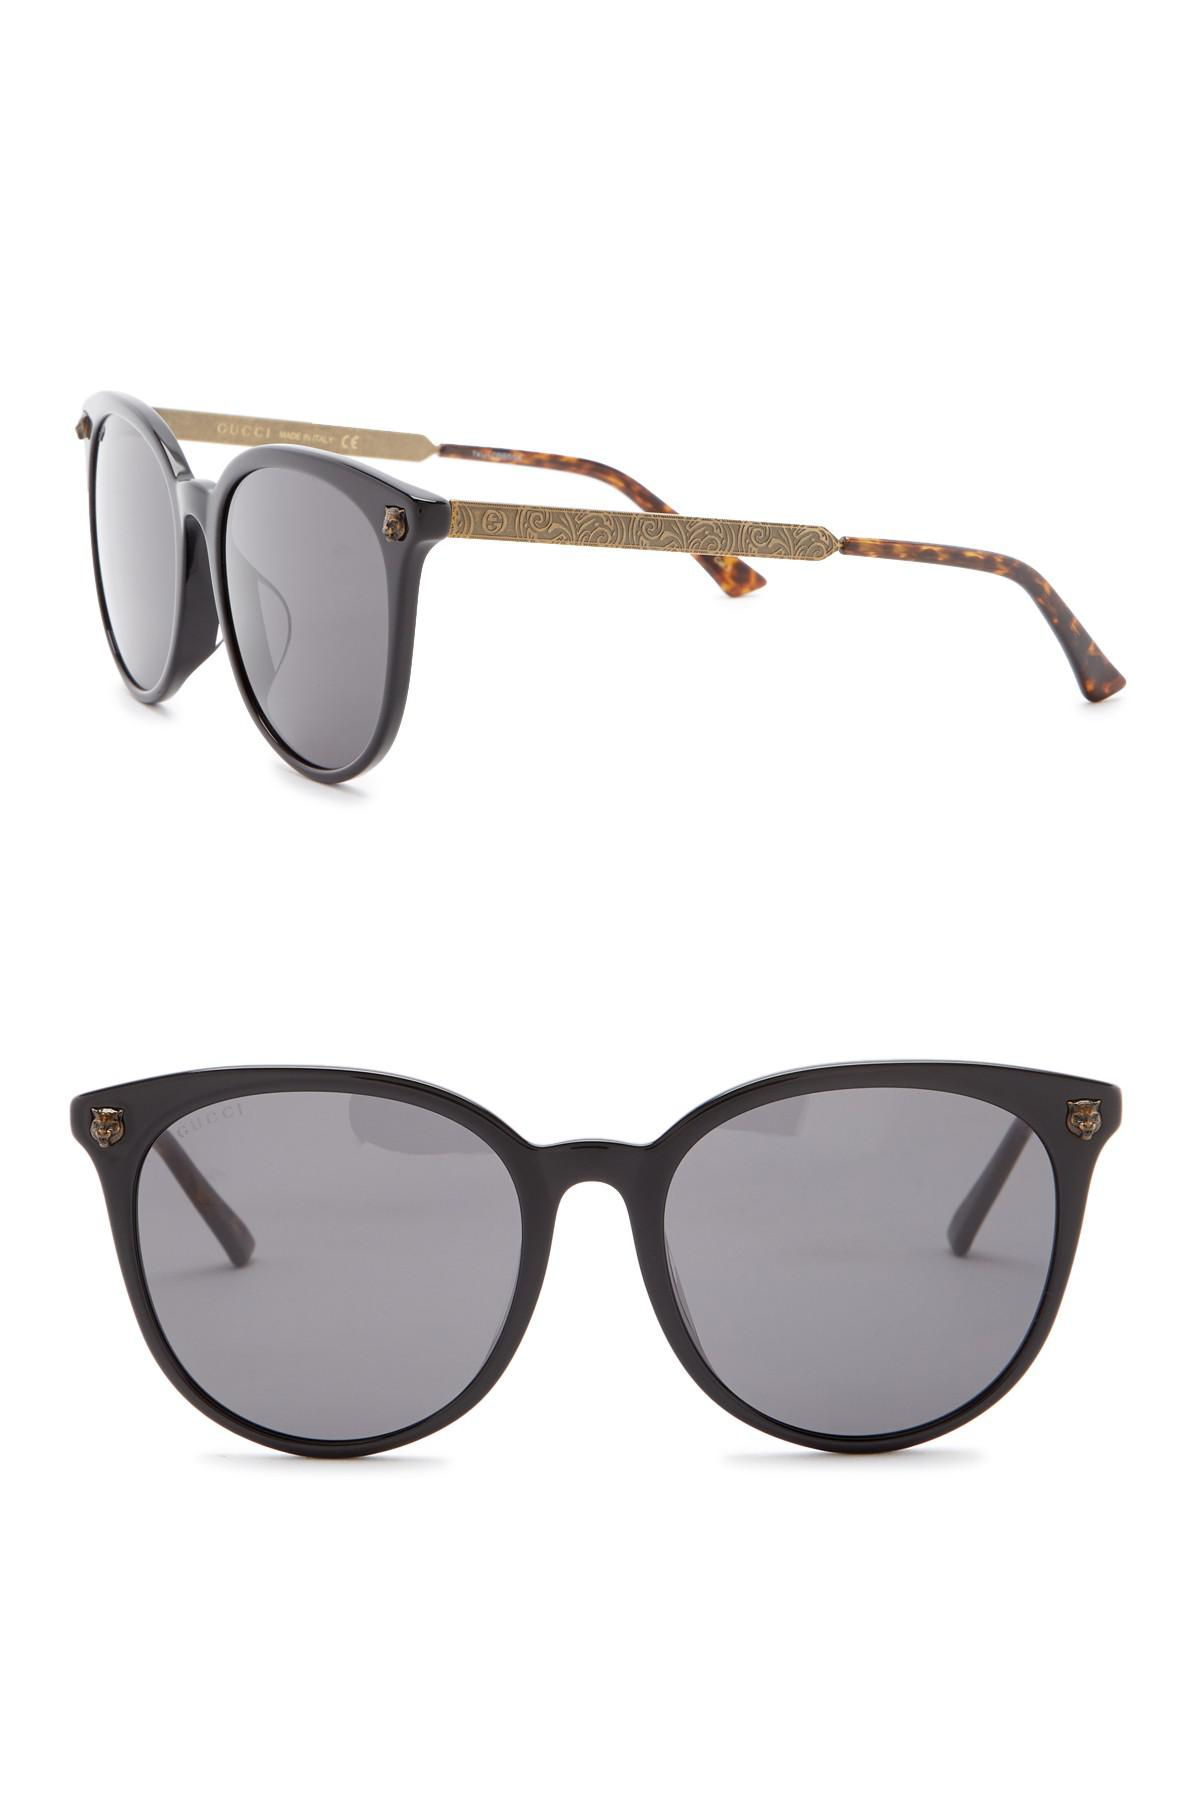 8cea0bd9477 Lyst - Gucci 56mm Scroll Round Sunglasses in Gray